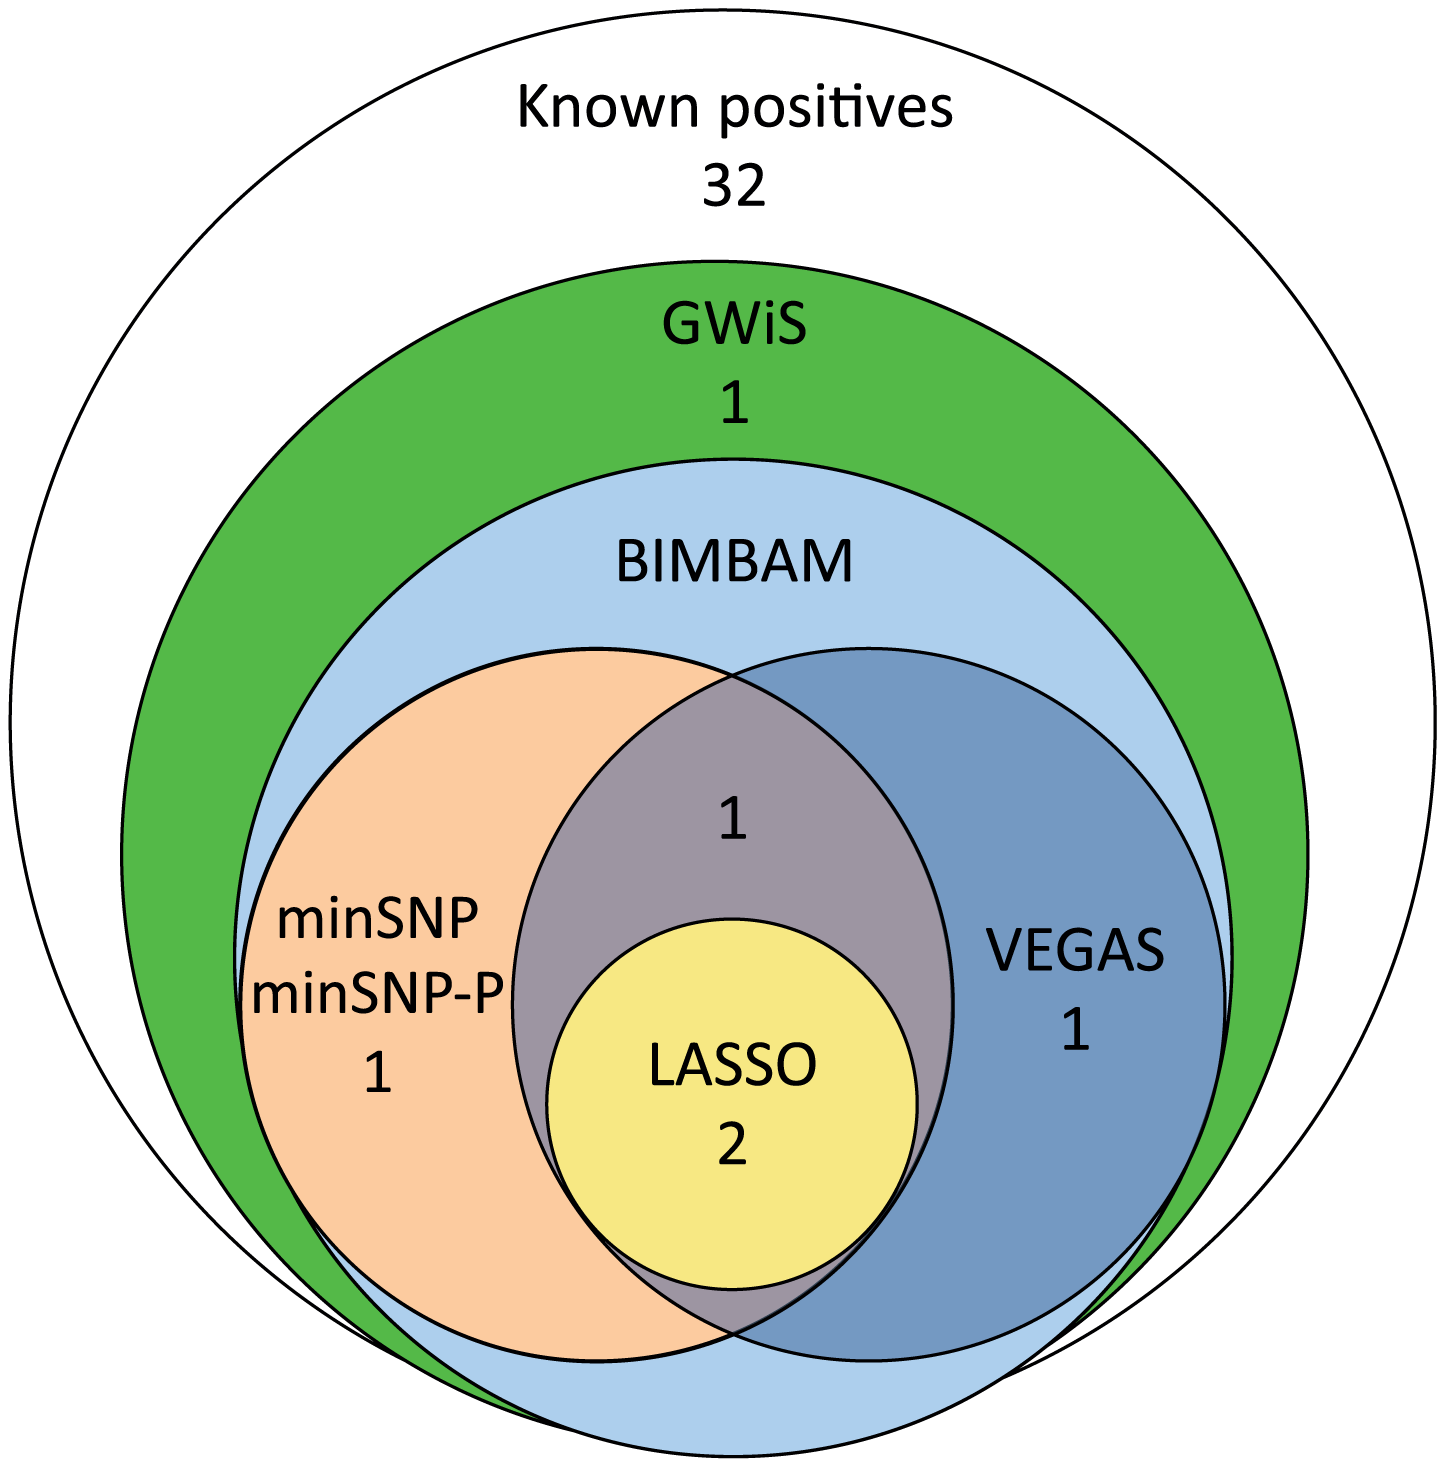 Recovery of known positive associations at genome-wide significance.